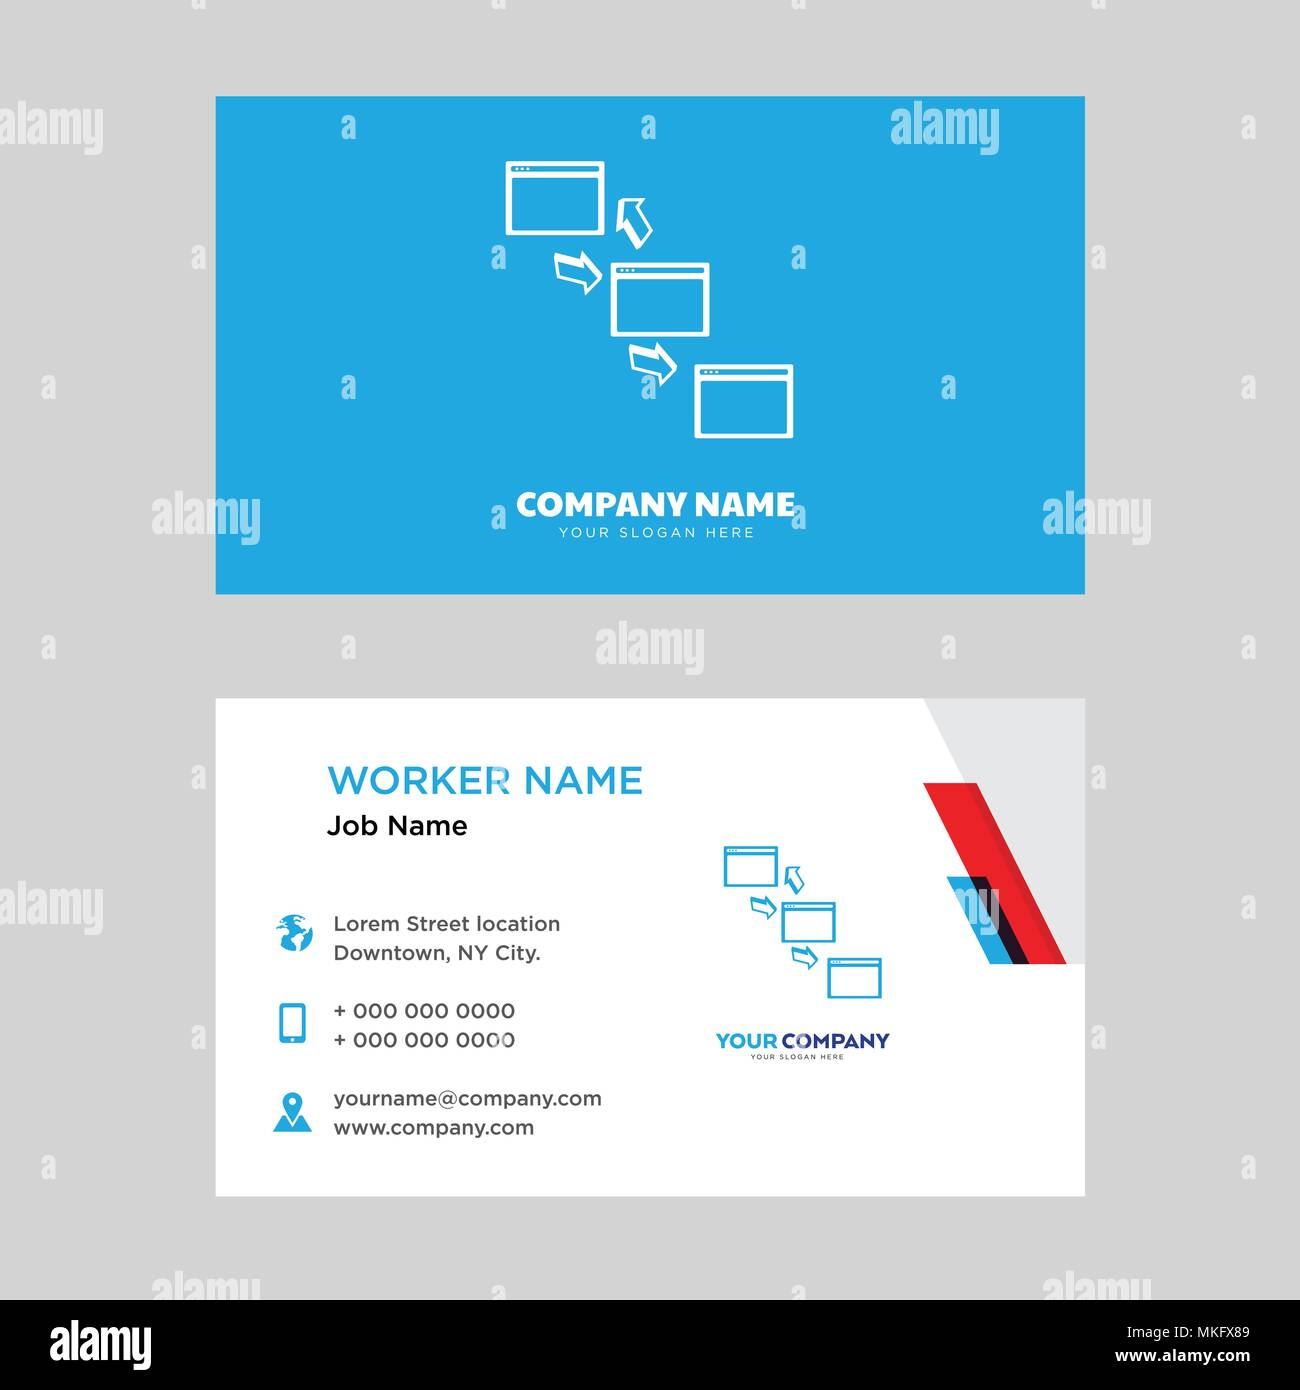 Networking business card design template, Visiting for your company, Modern horizontal identity Card Vector Stock Vector